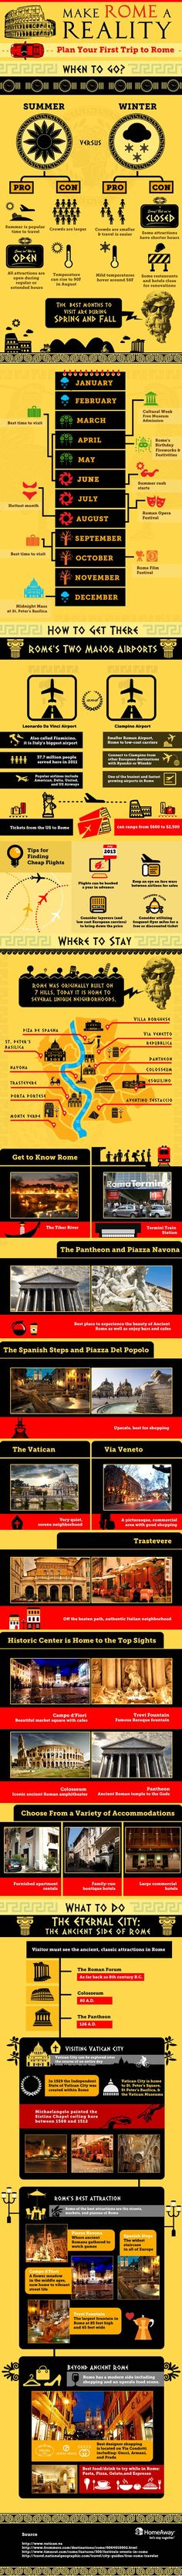 Make Rome a Reality [Infographic] I have been to Rome but would love to go again with Hubs and the kids.